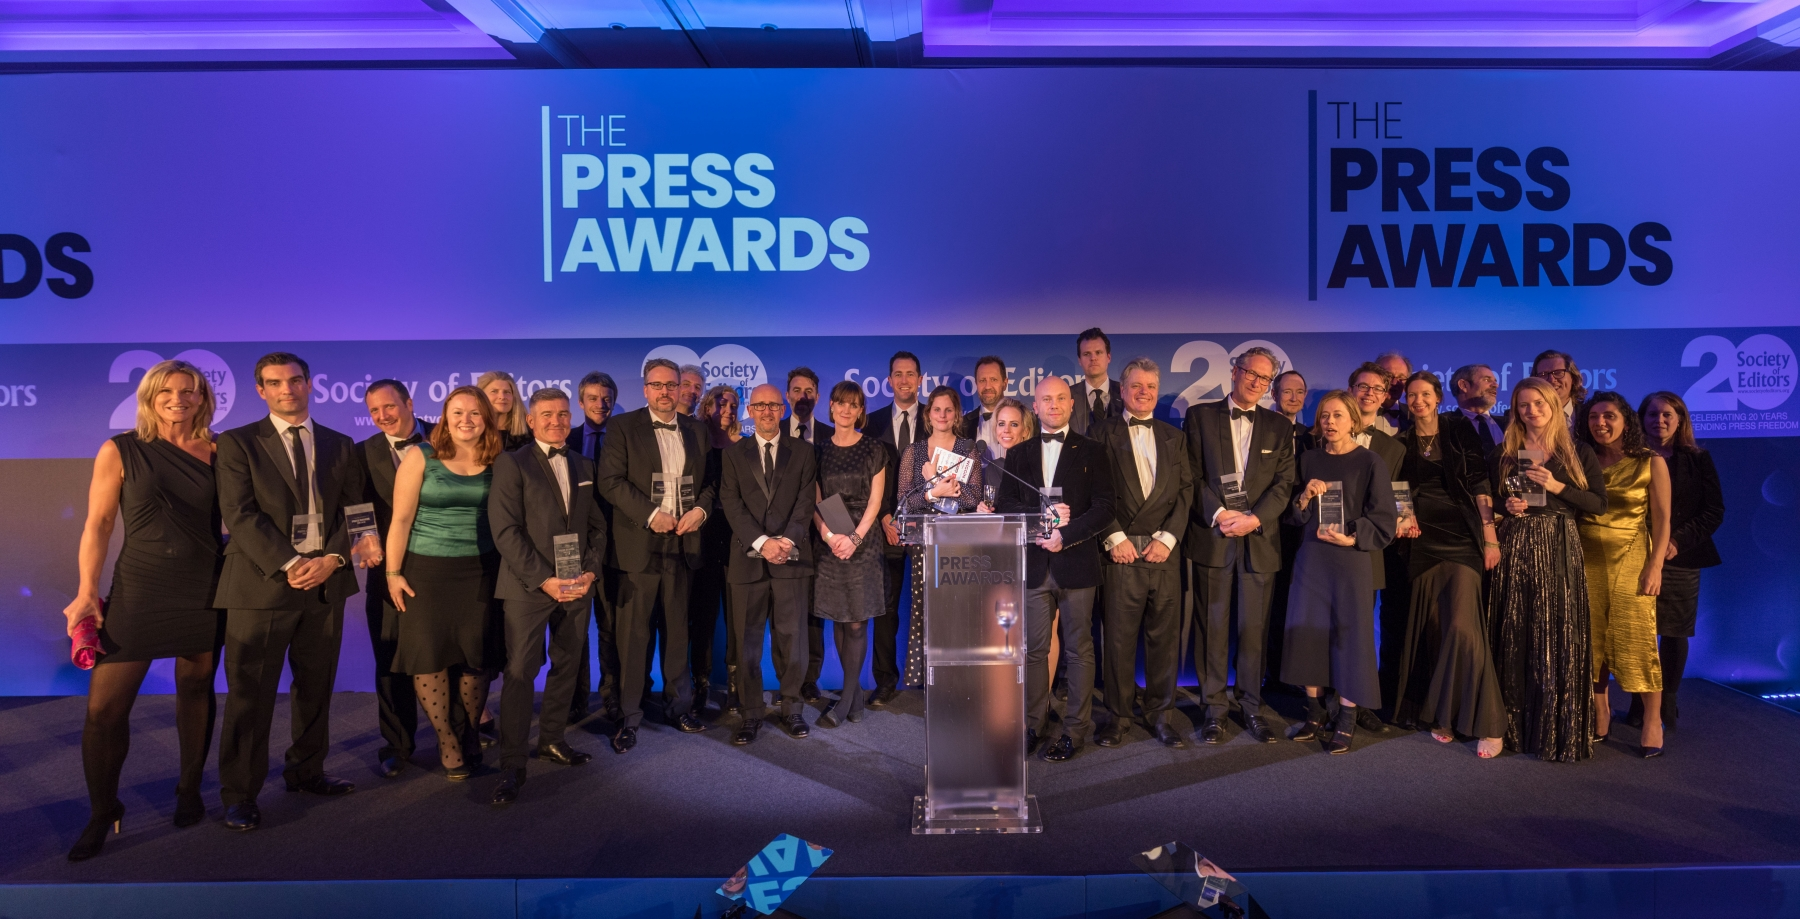 Press Awards 2018 - Group Photo